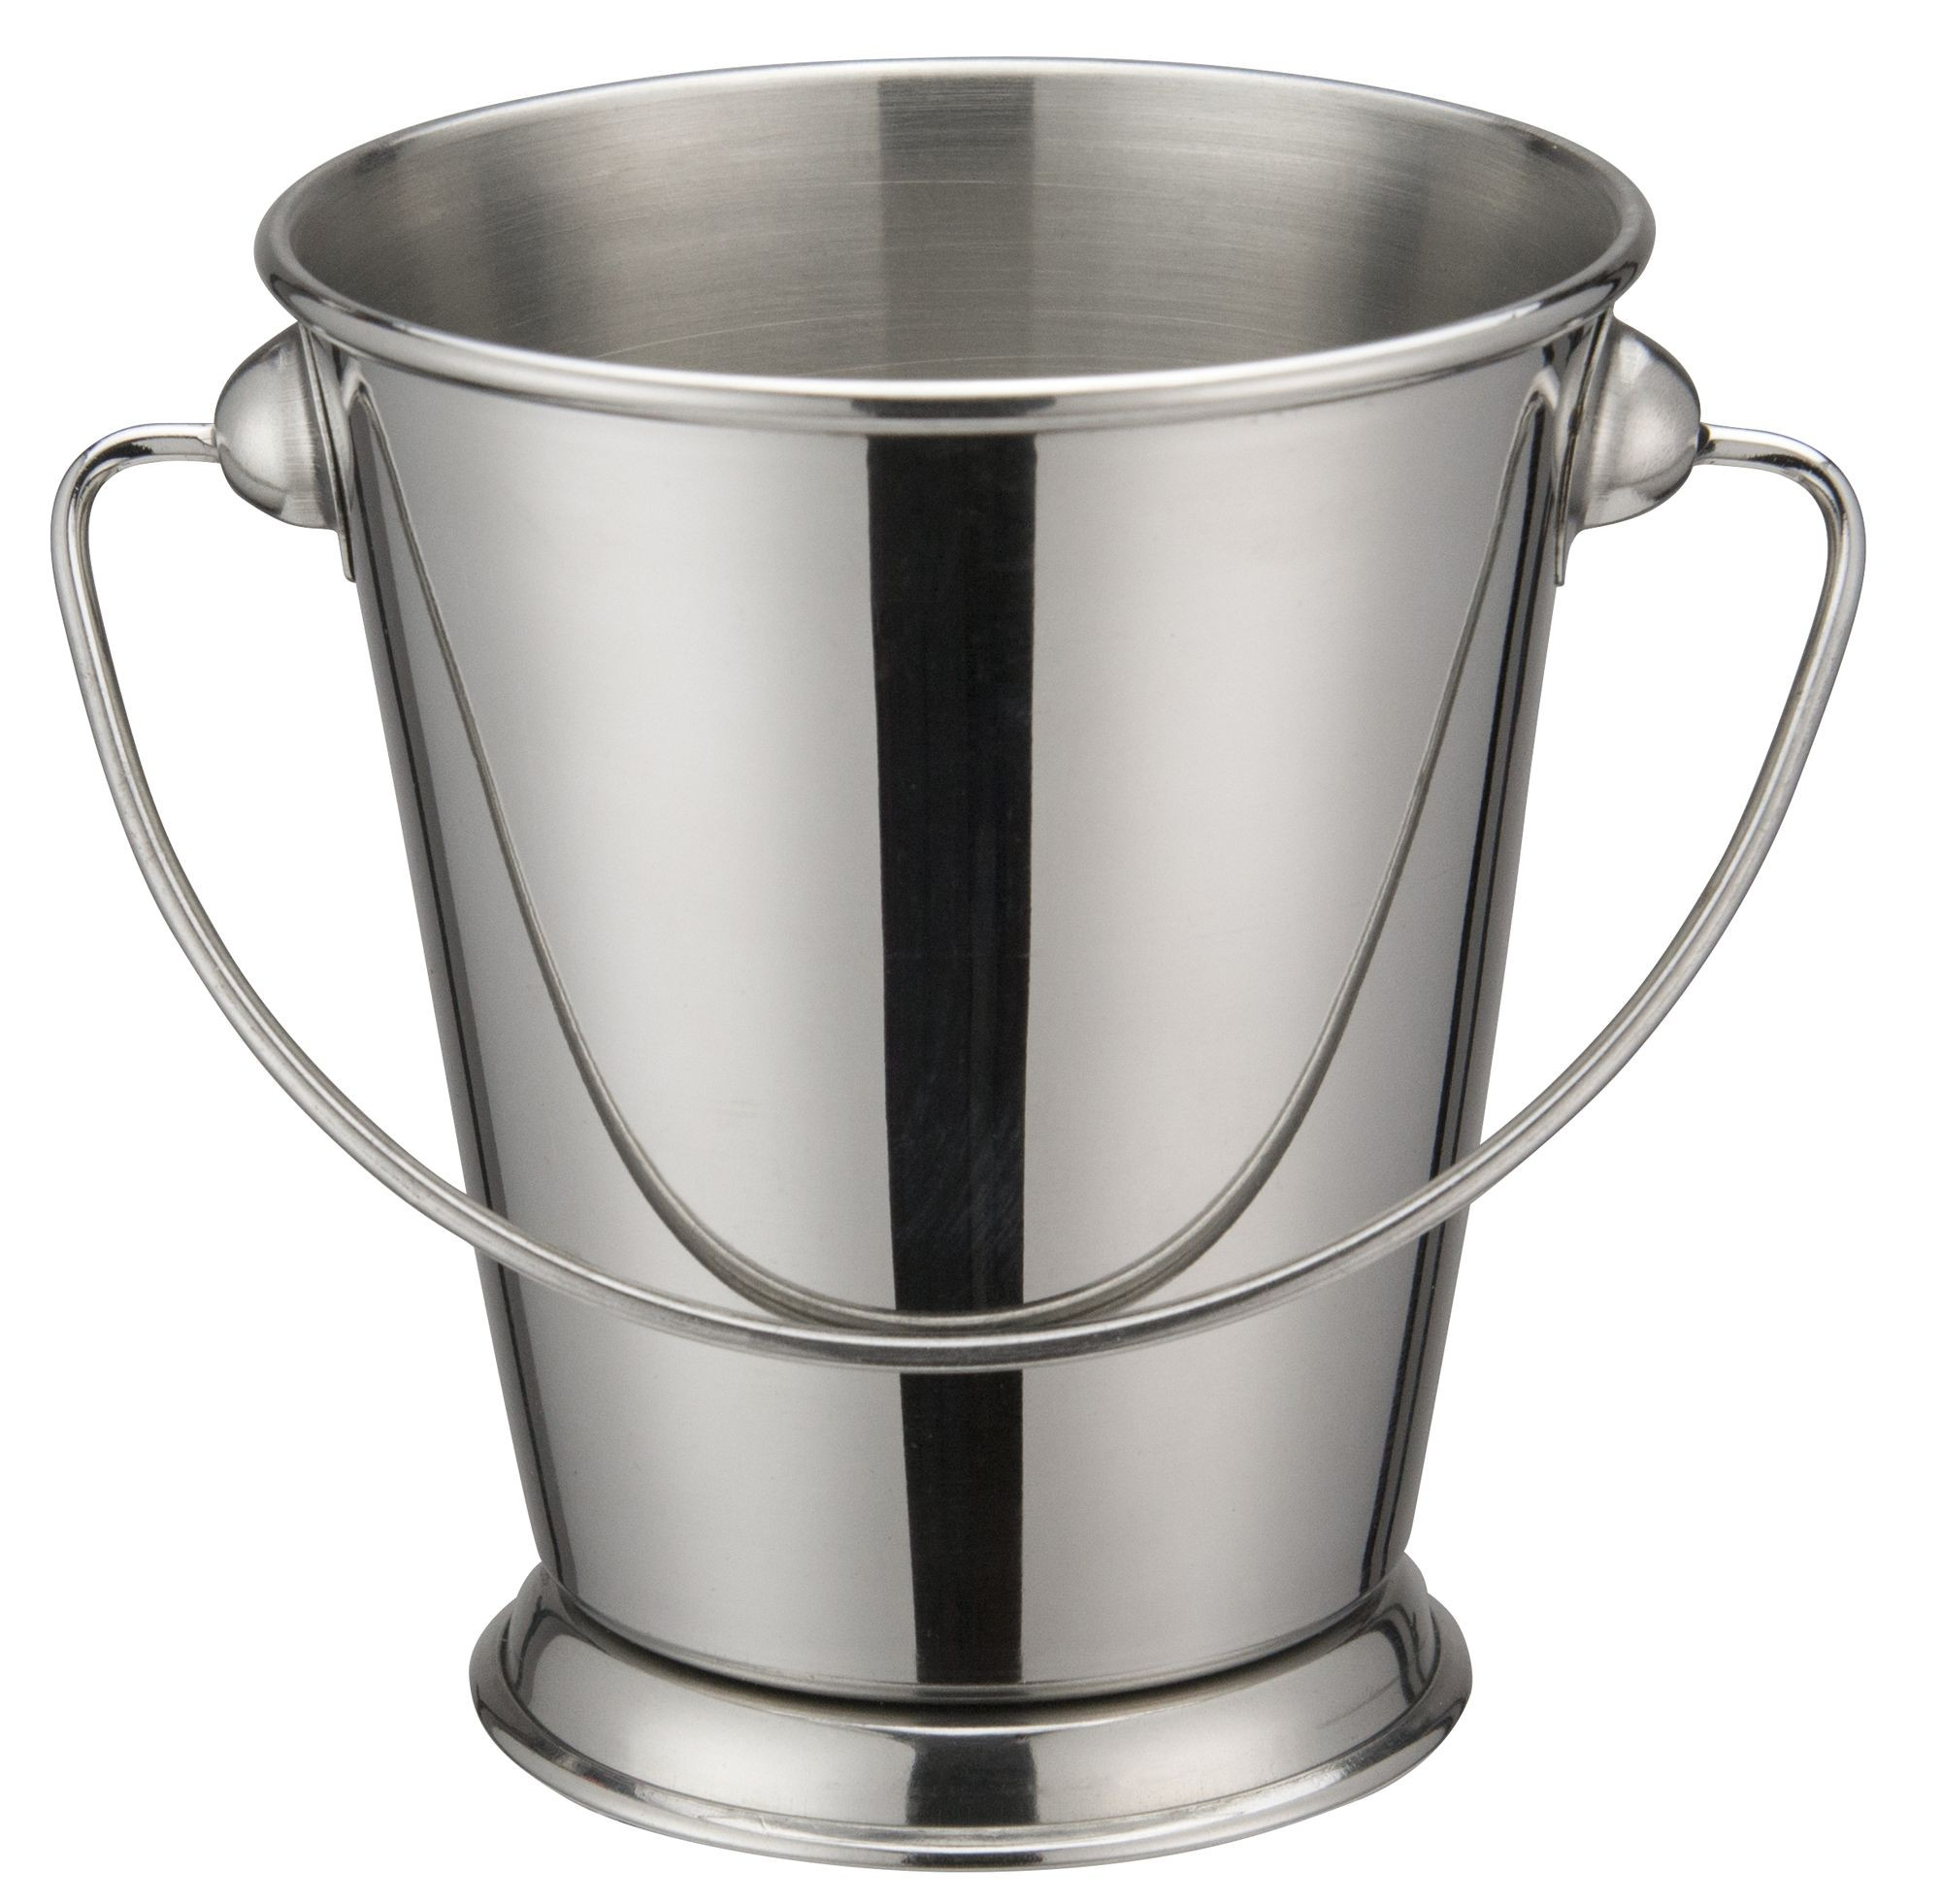 "Winco DDSA-106S Stainless Steel 3-3/4"" Dia x 3-3/4"" H Mini Pail"